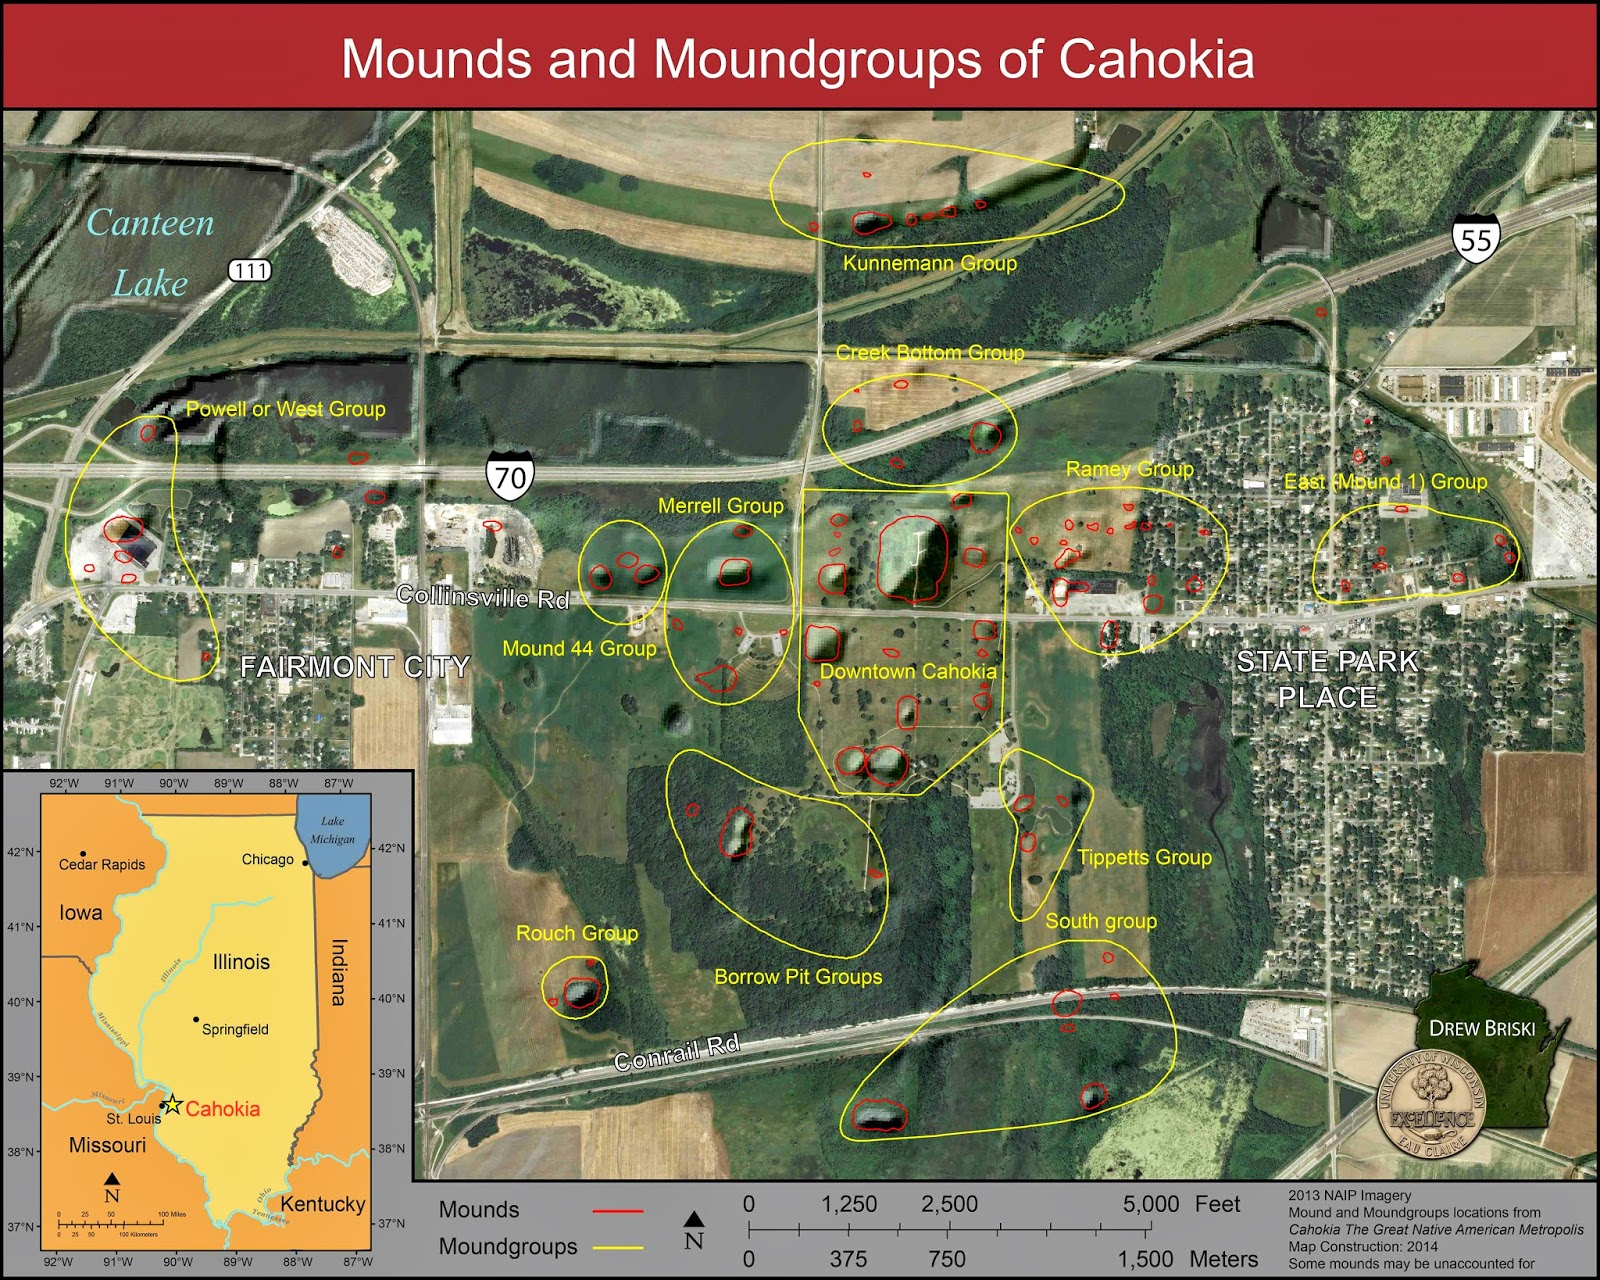 cahokia is a mississippian city which was once larger than london england in 1250 ad the final poster for this research project will be uploaded once